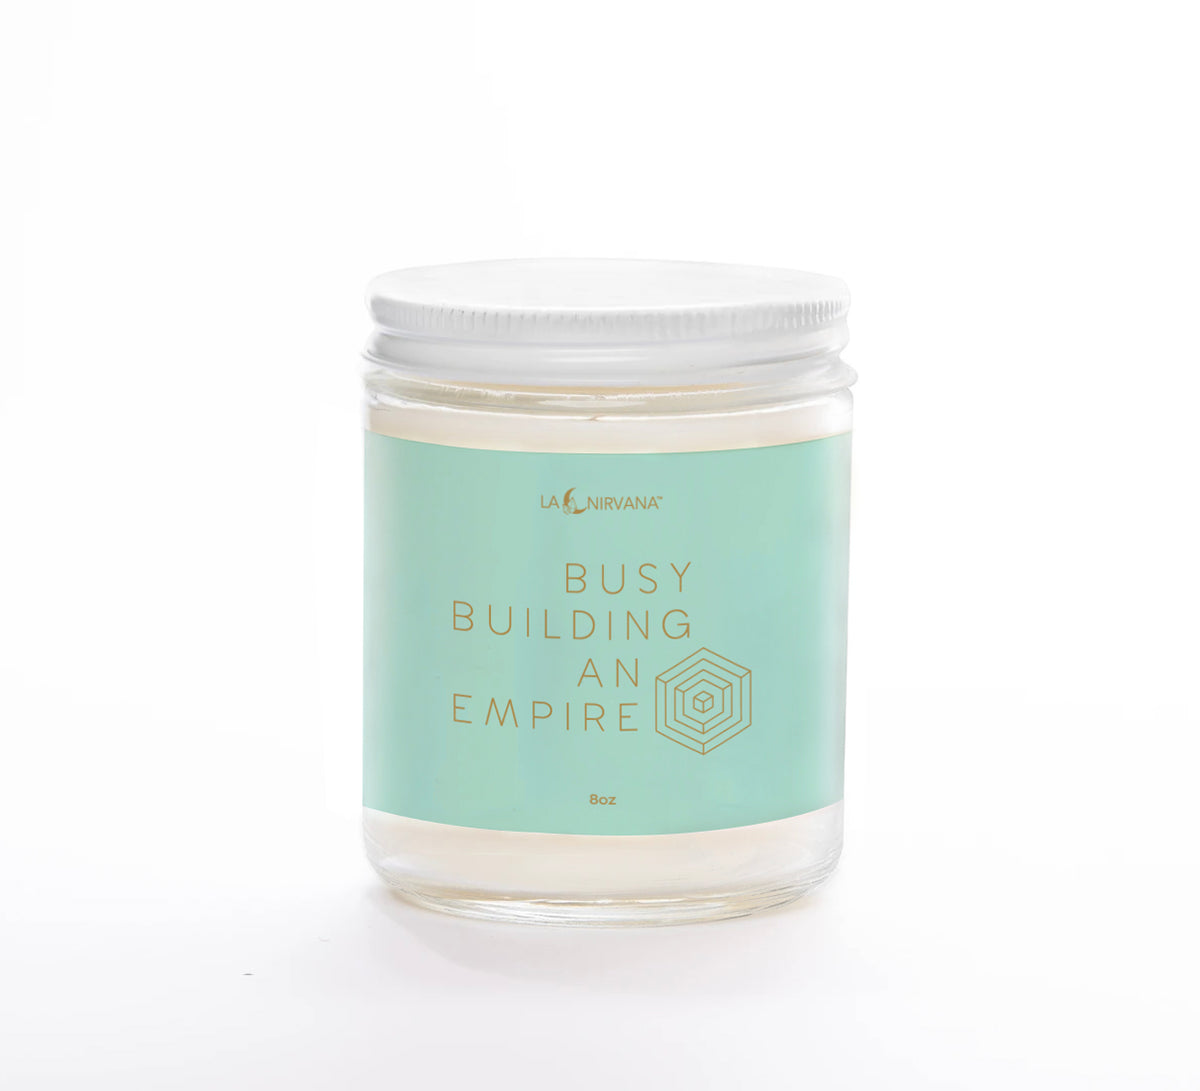 BUSY BUILDING AN EMPIRE CANDLE